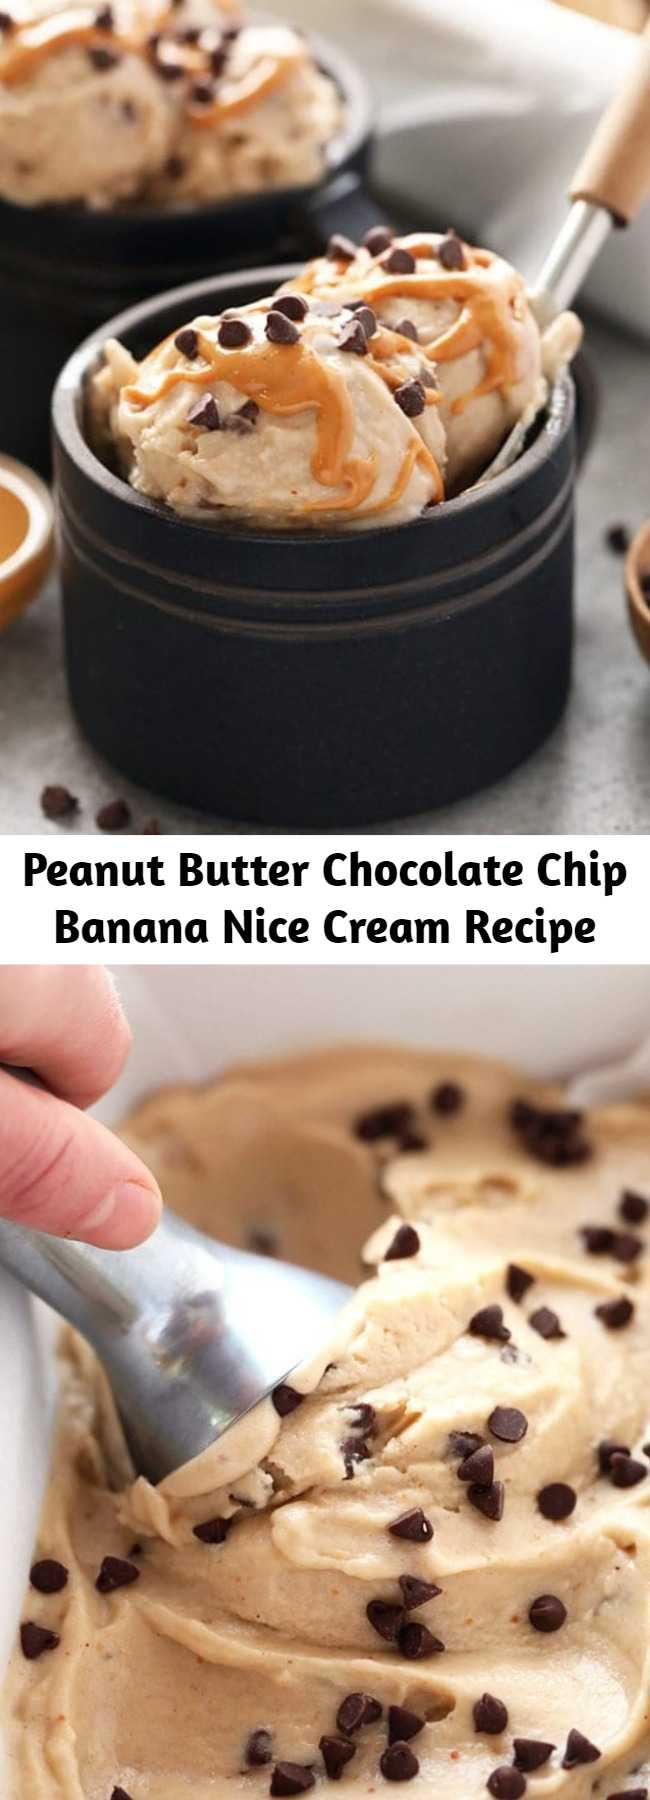 Peanut Butter Chocolate Chip Banana Nice Cream Recipe - This Peanut Butter Banana Nice Cream recipe will make your dessert dreams come true! With only 4 ingredients, this nice cream is dairy-free, vegan and ready in under 10 minutes flat. Top with chocolate chips and serve immediately or freeze for later! #kidfriendly #dessert #healthydessert #glutenfree